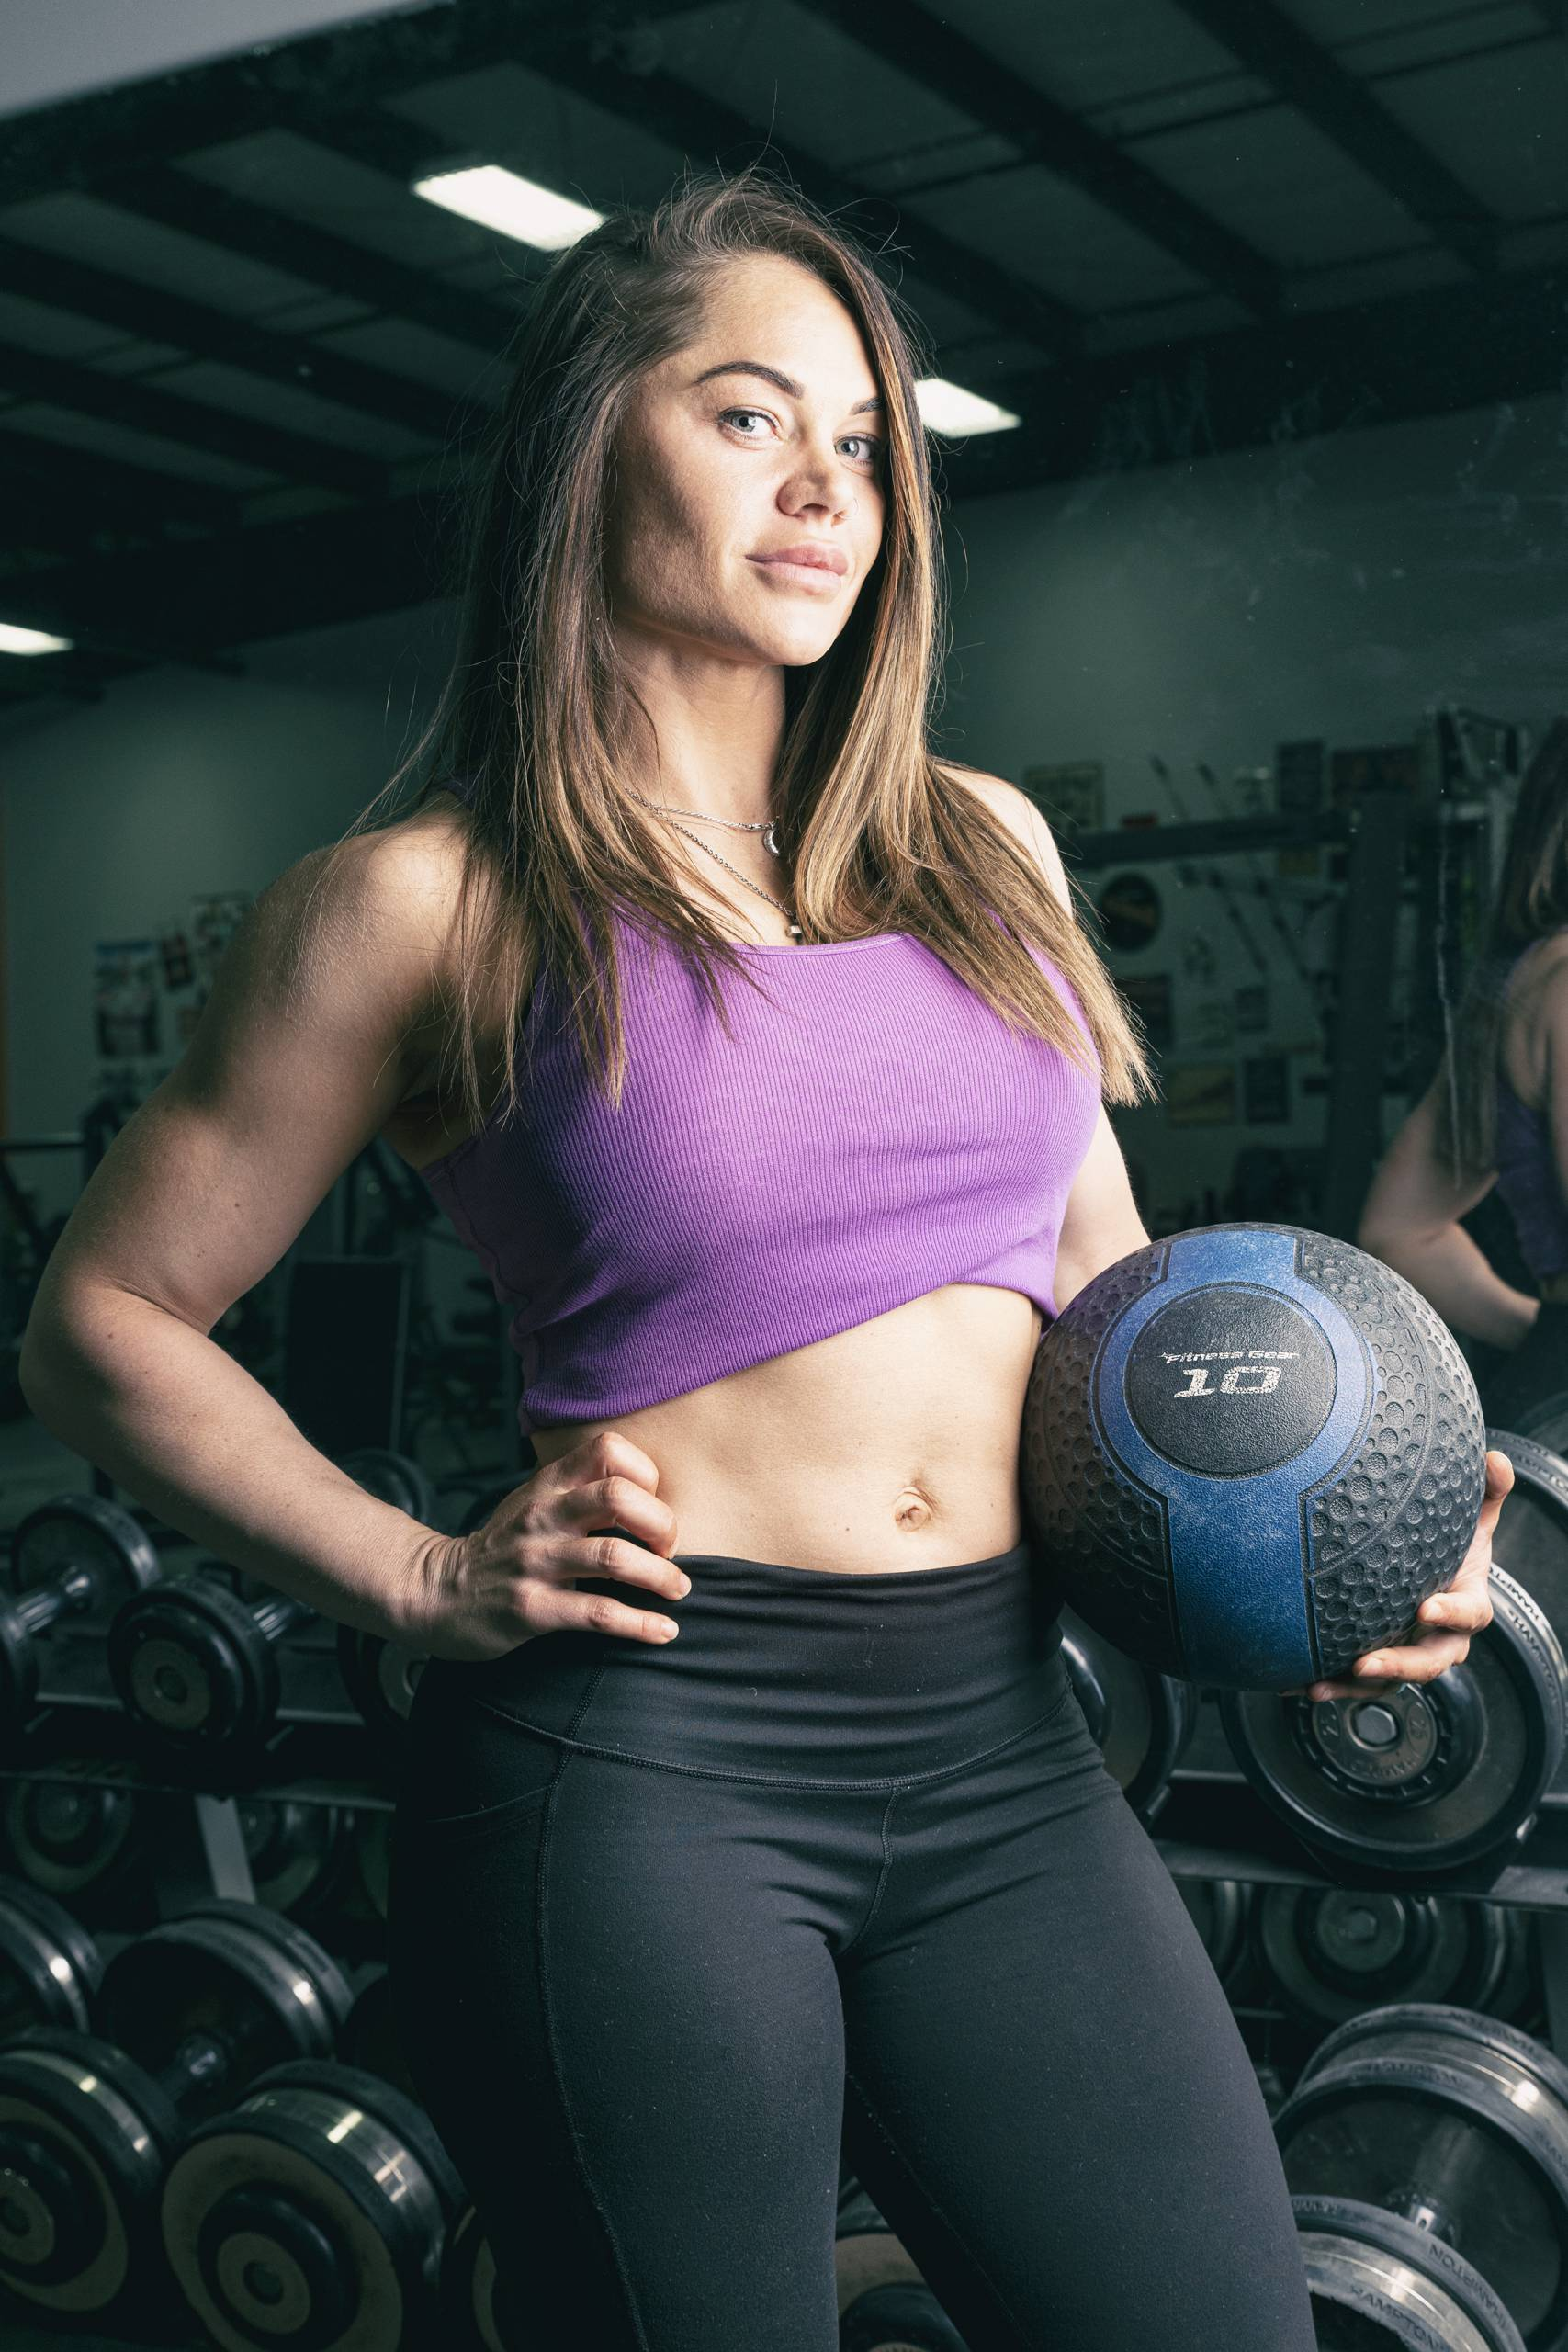 Jacqueline Sobotka Fitness and Nutrition Coaching